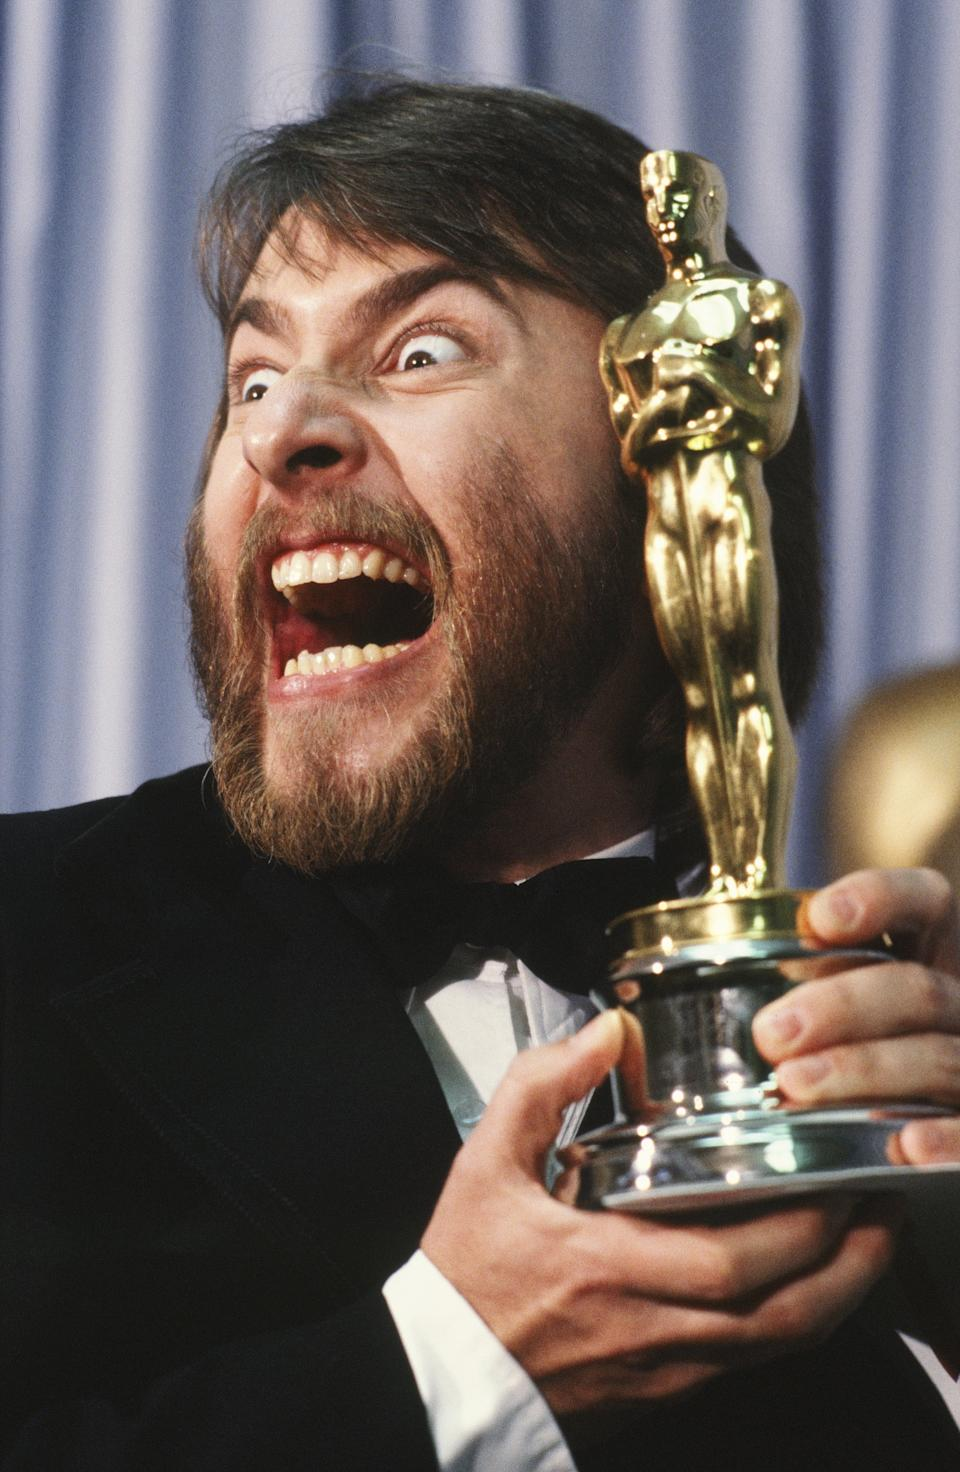 LOS ANGELES, CA - 1981:  Academy Award-winning makeup artist, Rick Baker, poses in a 1981 Los Angeles, California, backstage photo shoot with his Oscar. Baker won the award for his work on the film